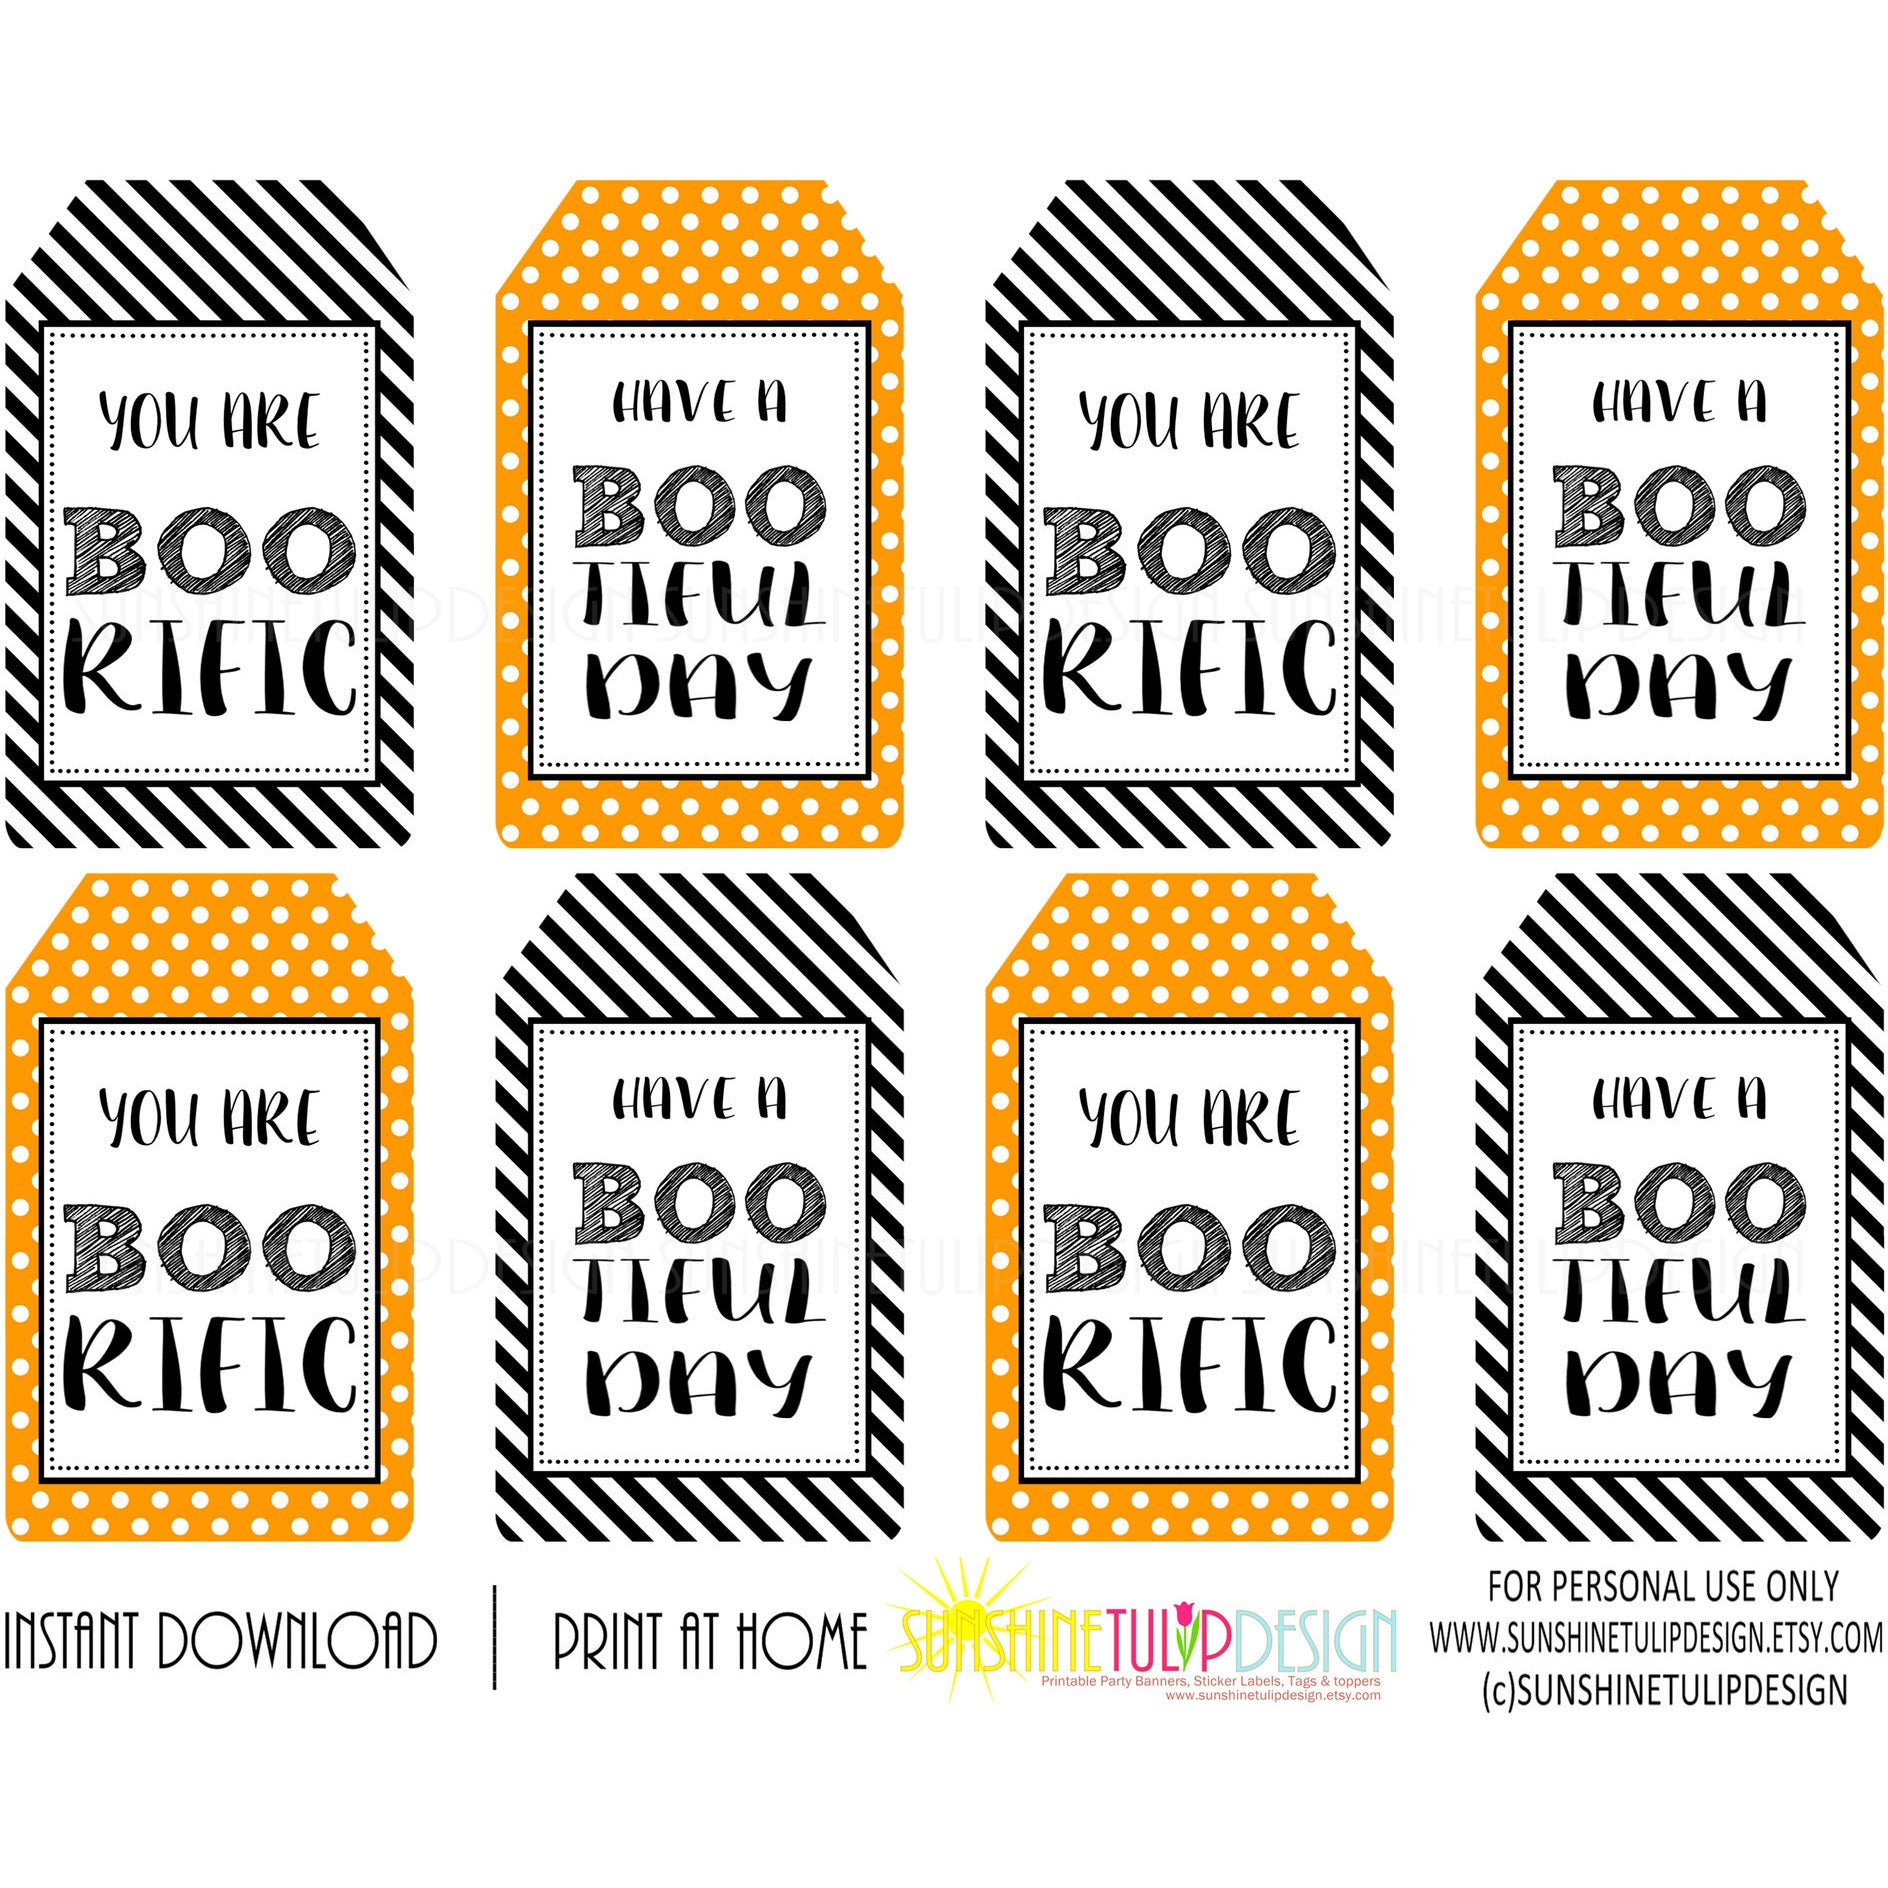 picture relating to Printable Halloween Gift Tags referred to as Printable Halloween Reward Tags, Halloween BOOrific BOOtiful Working day Want Reward Tags via Sunshinetulipdesign